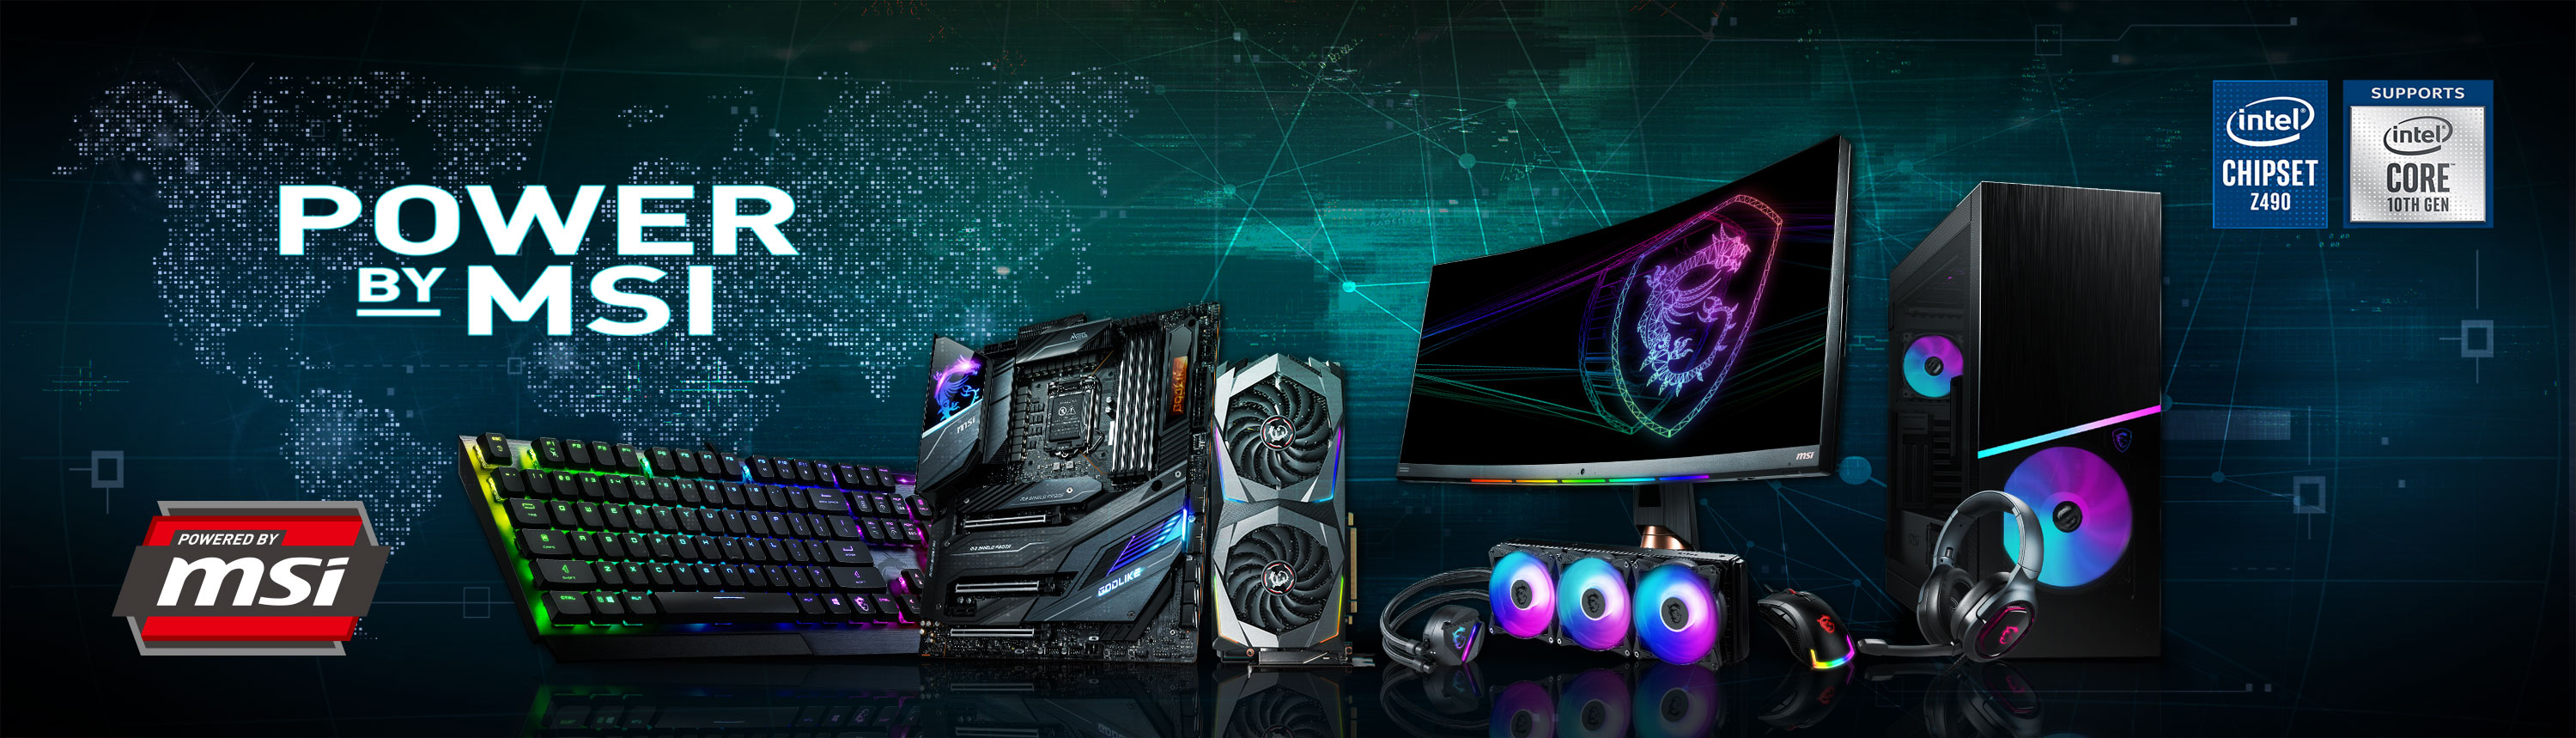 Power by msi